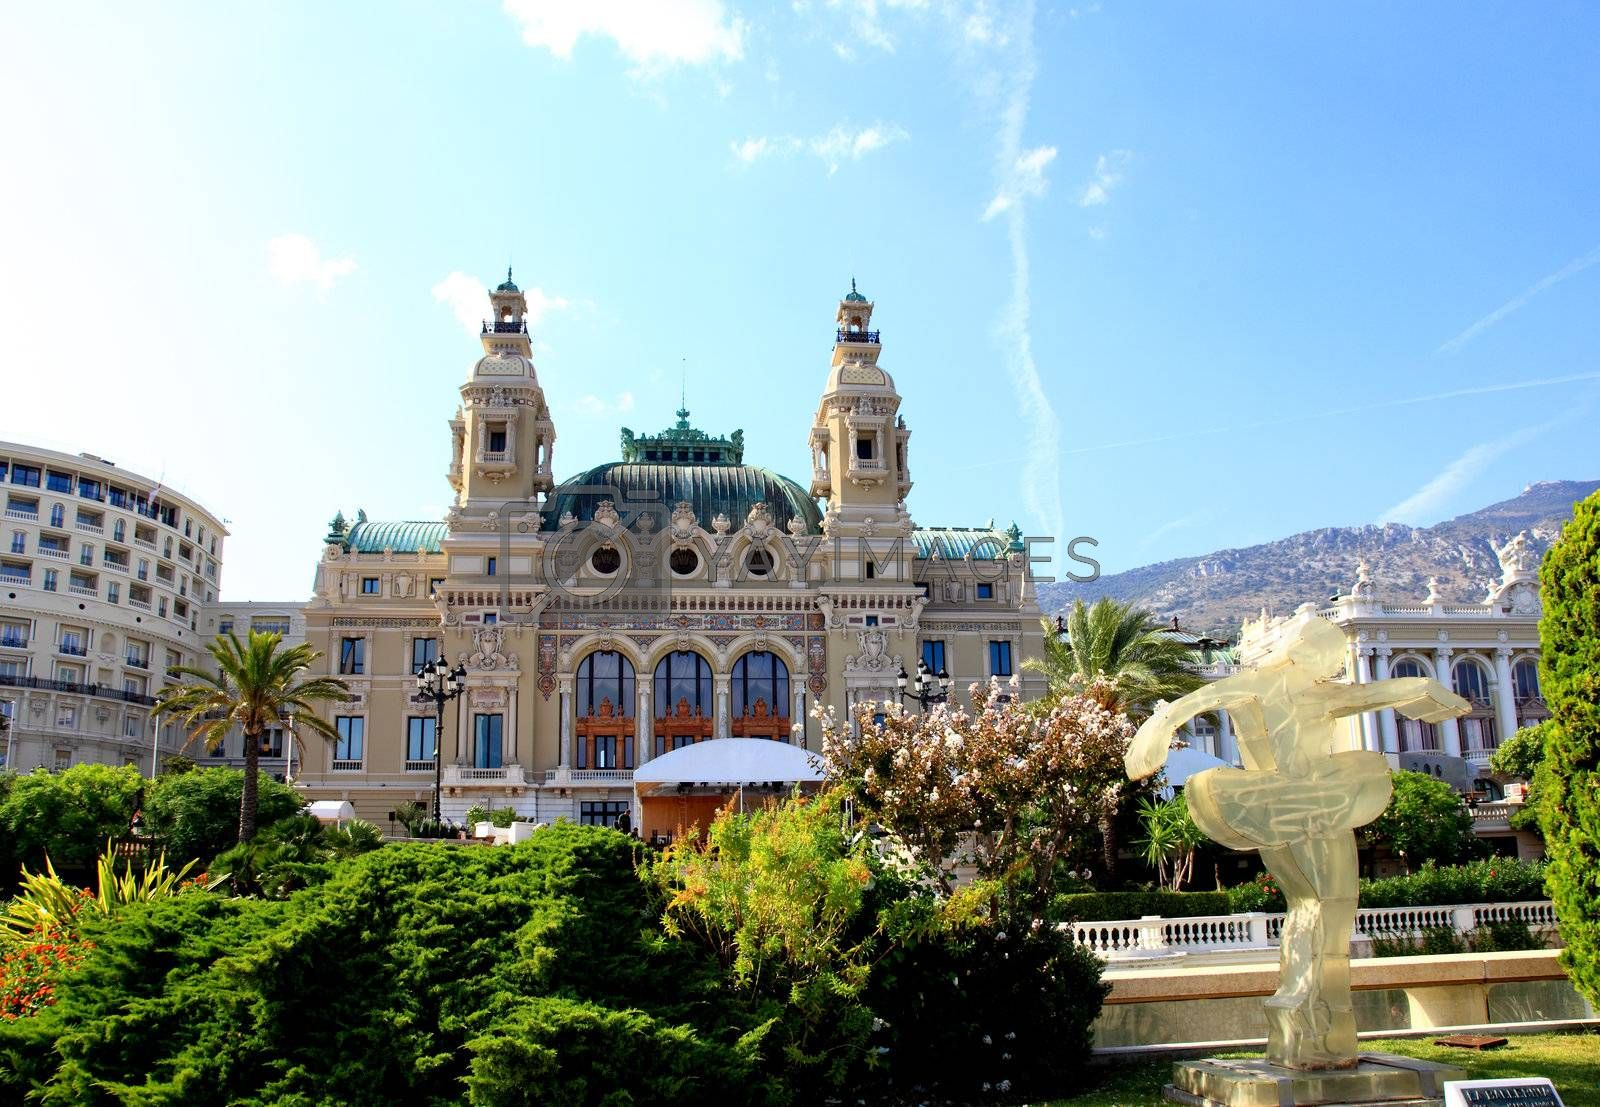 Royalty free image of The Grand Casino Monte Carlo by gary718